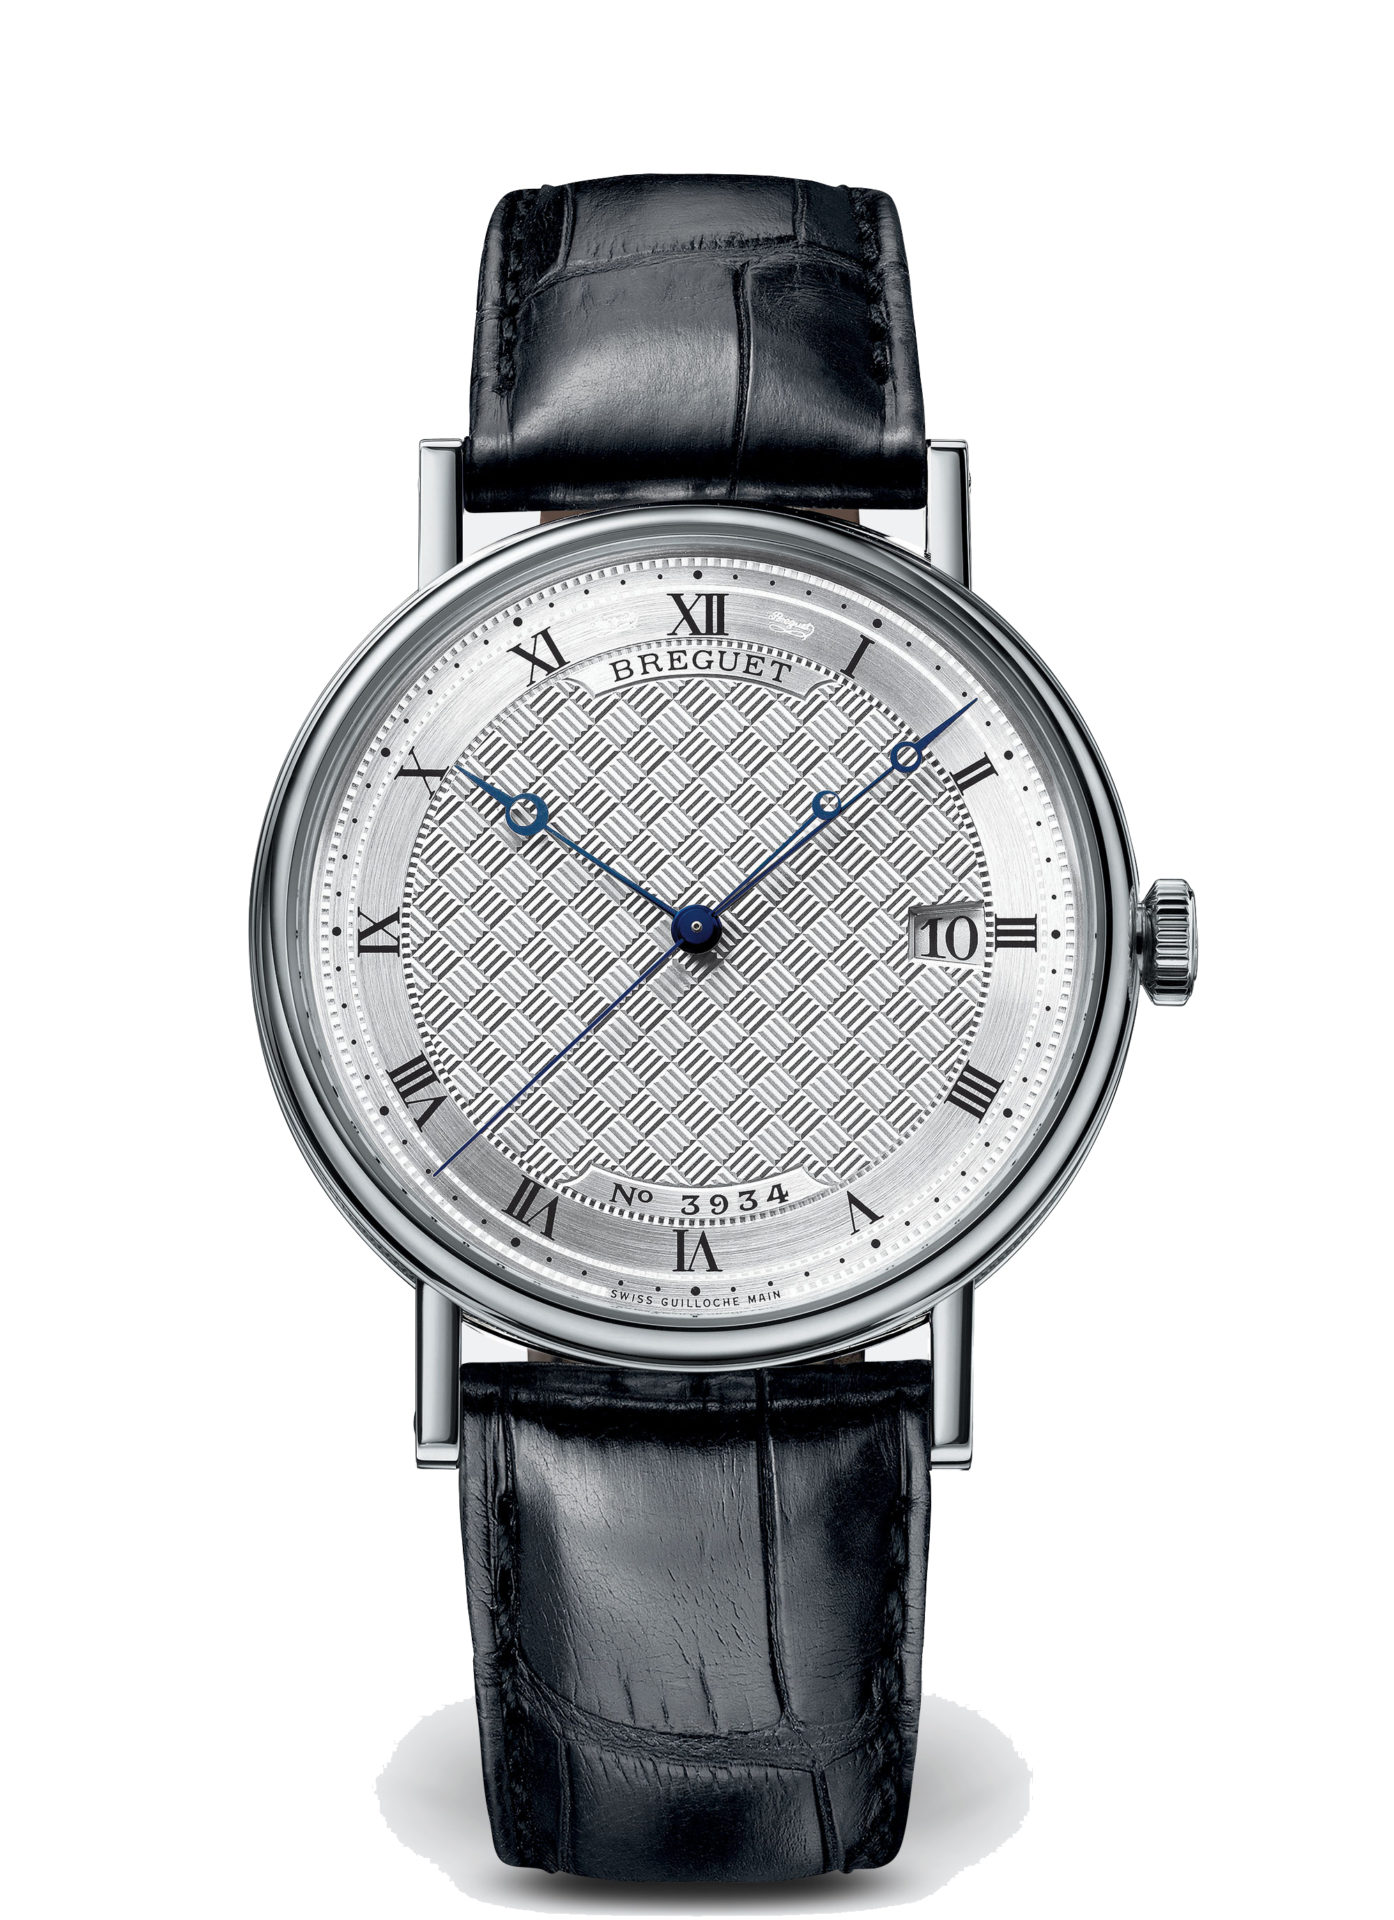 Breguet-Classique-5177-Hall-of-Time-5177bb-12-9v6 copie